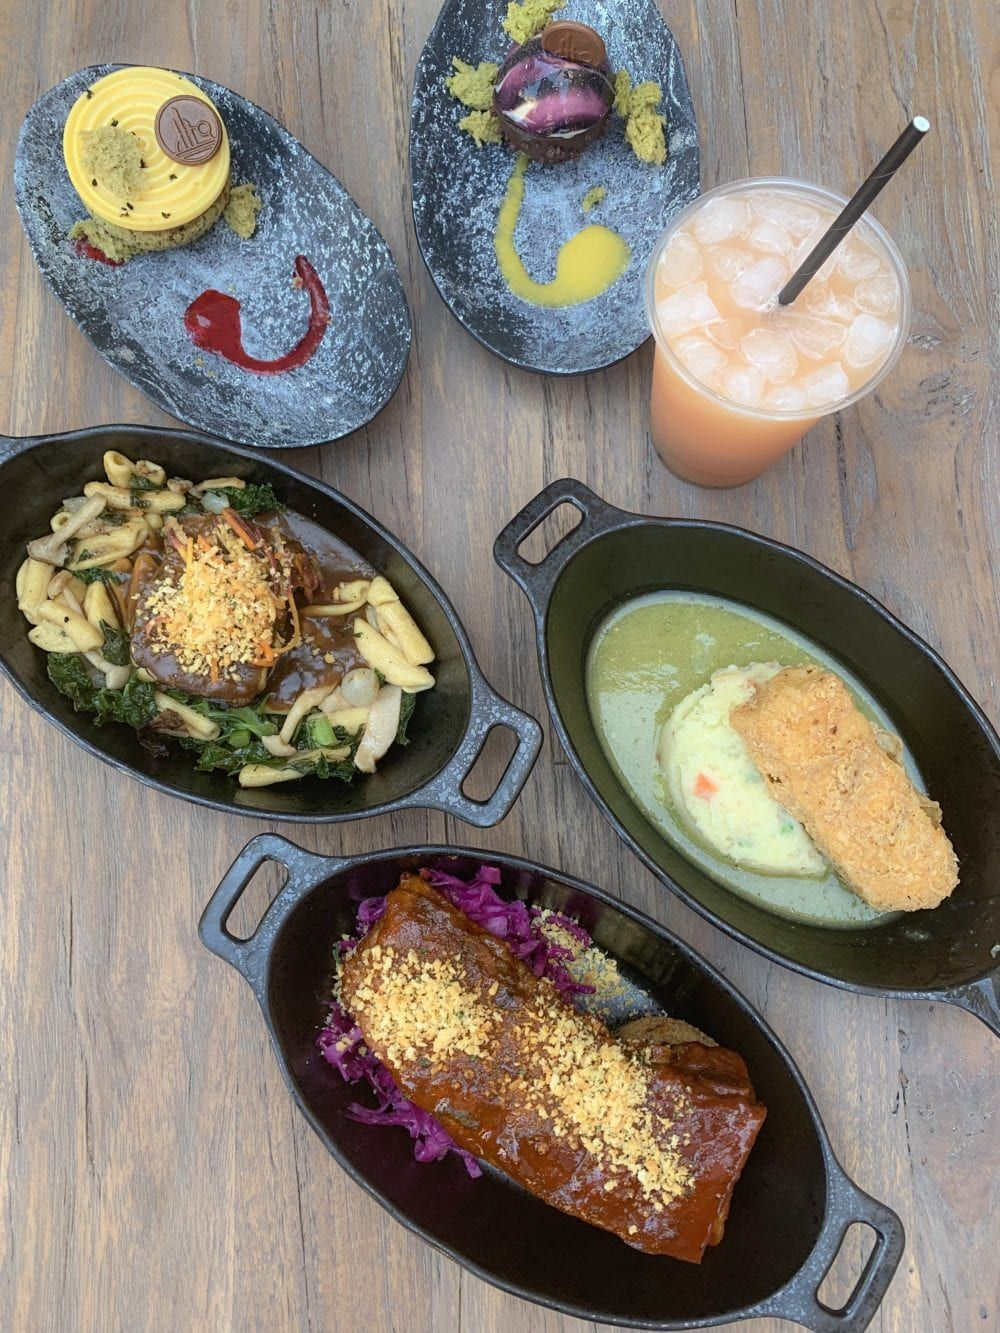 What To Eat at Docking Bay 7 Star Wars Galaxy's Edge Eat